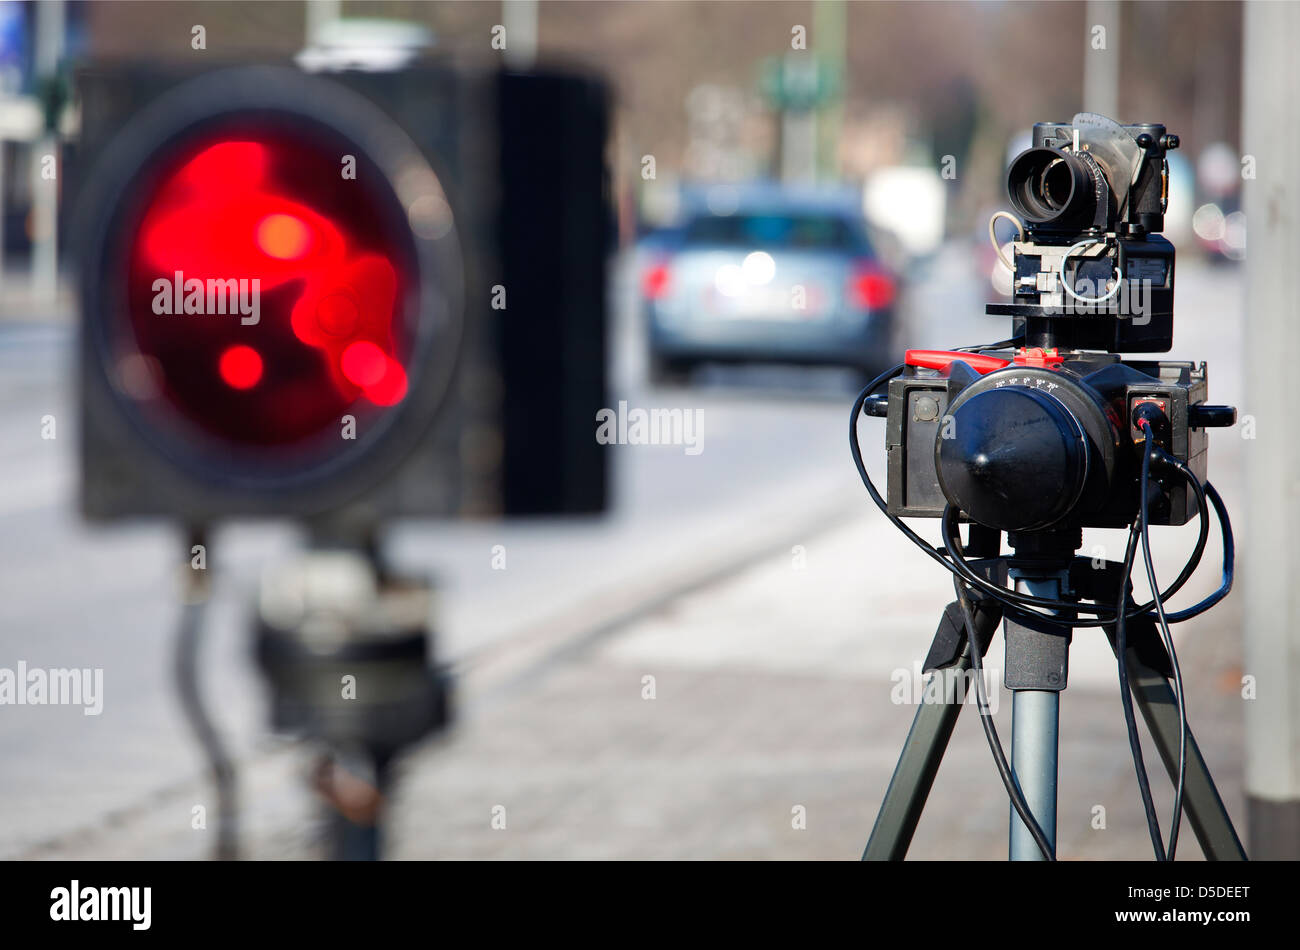 Duisburg, Germany, speed control using radar measuring - Stock Image